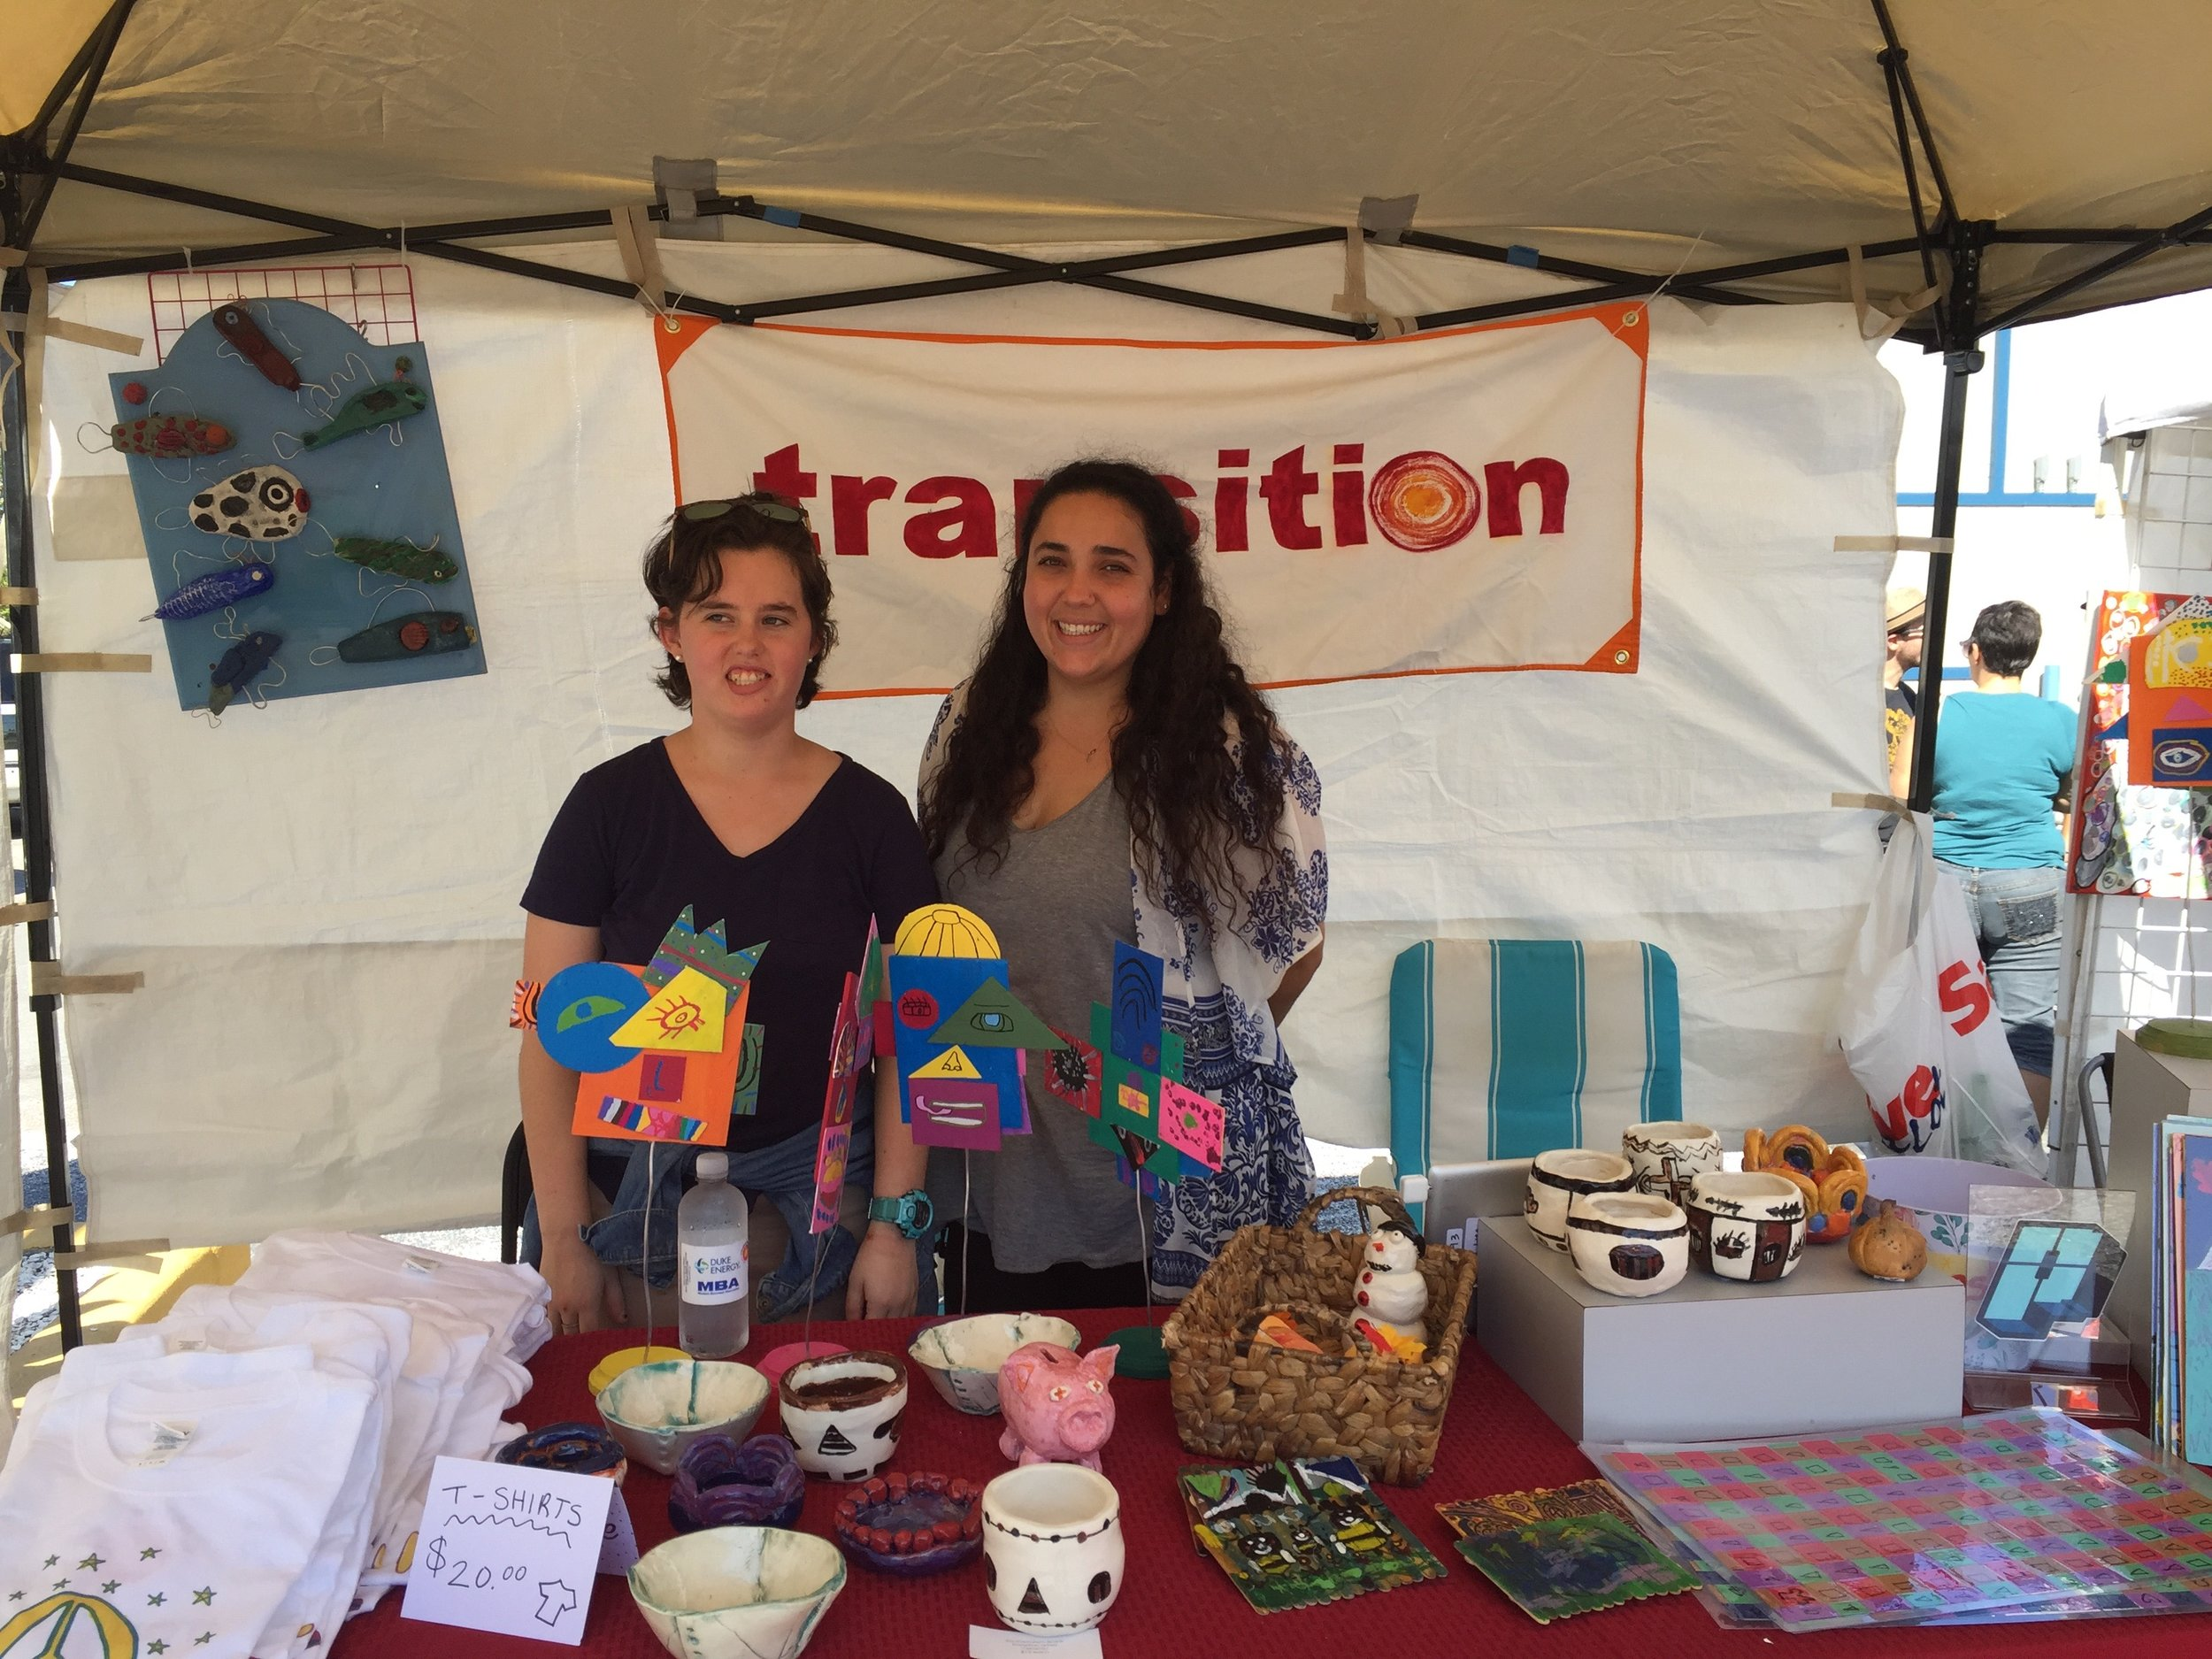 Transition tent at Creative Clay Fest at 3 Daughters Brewing in November 2018.